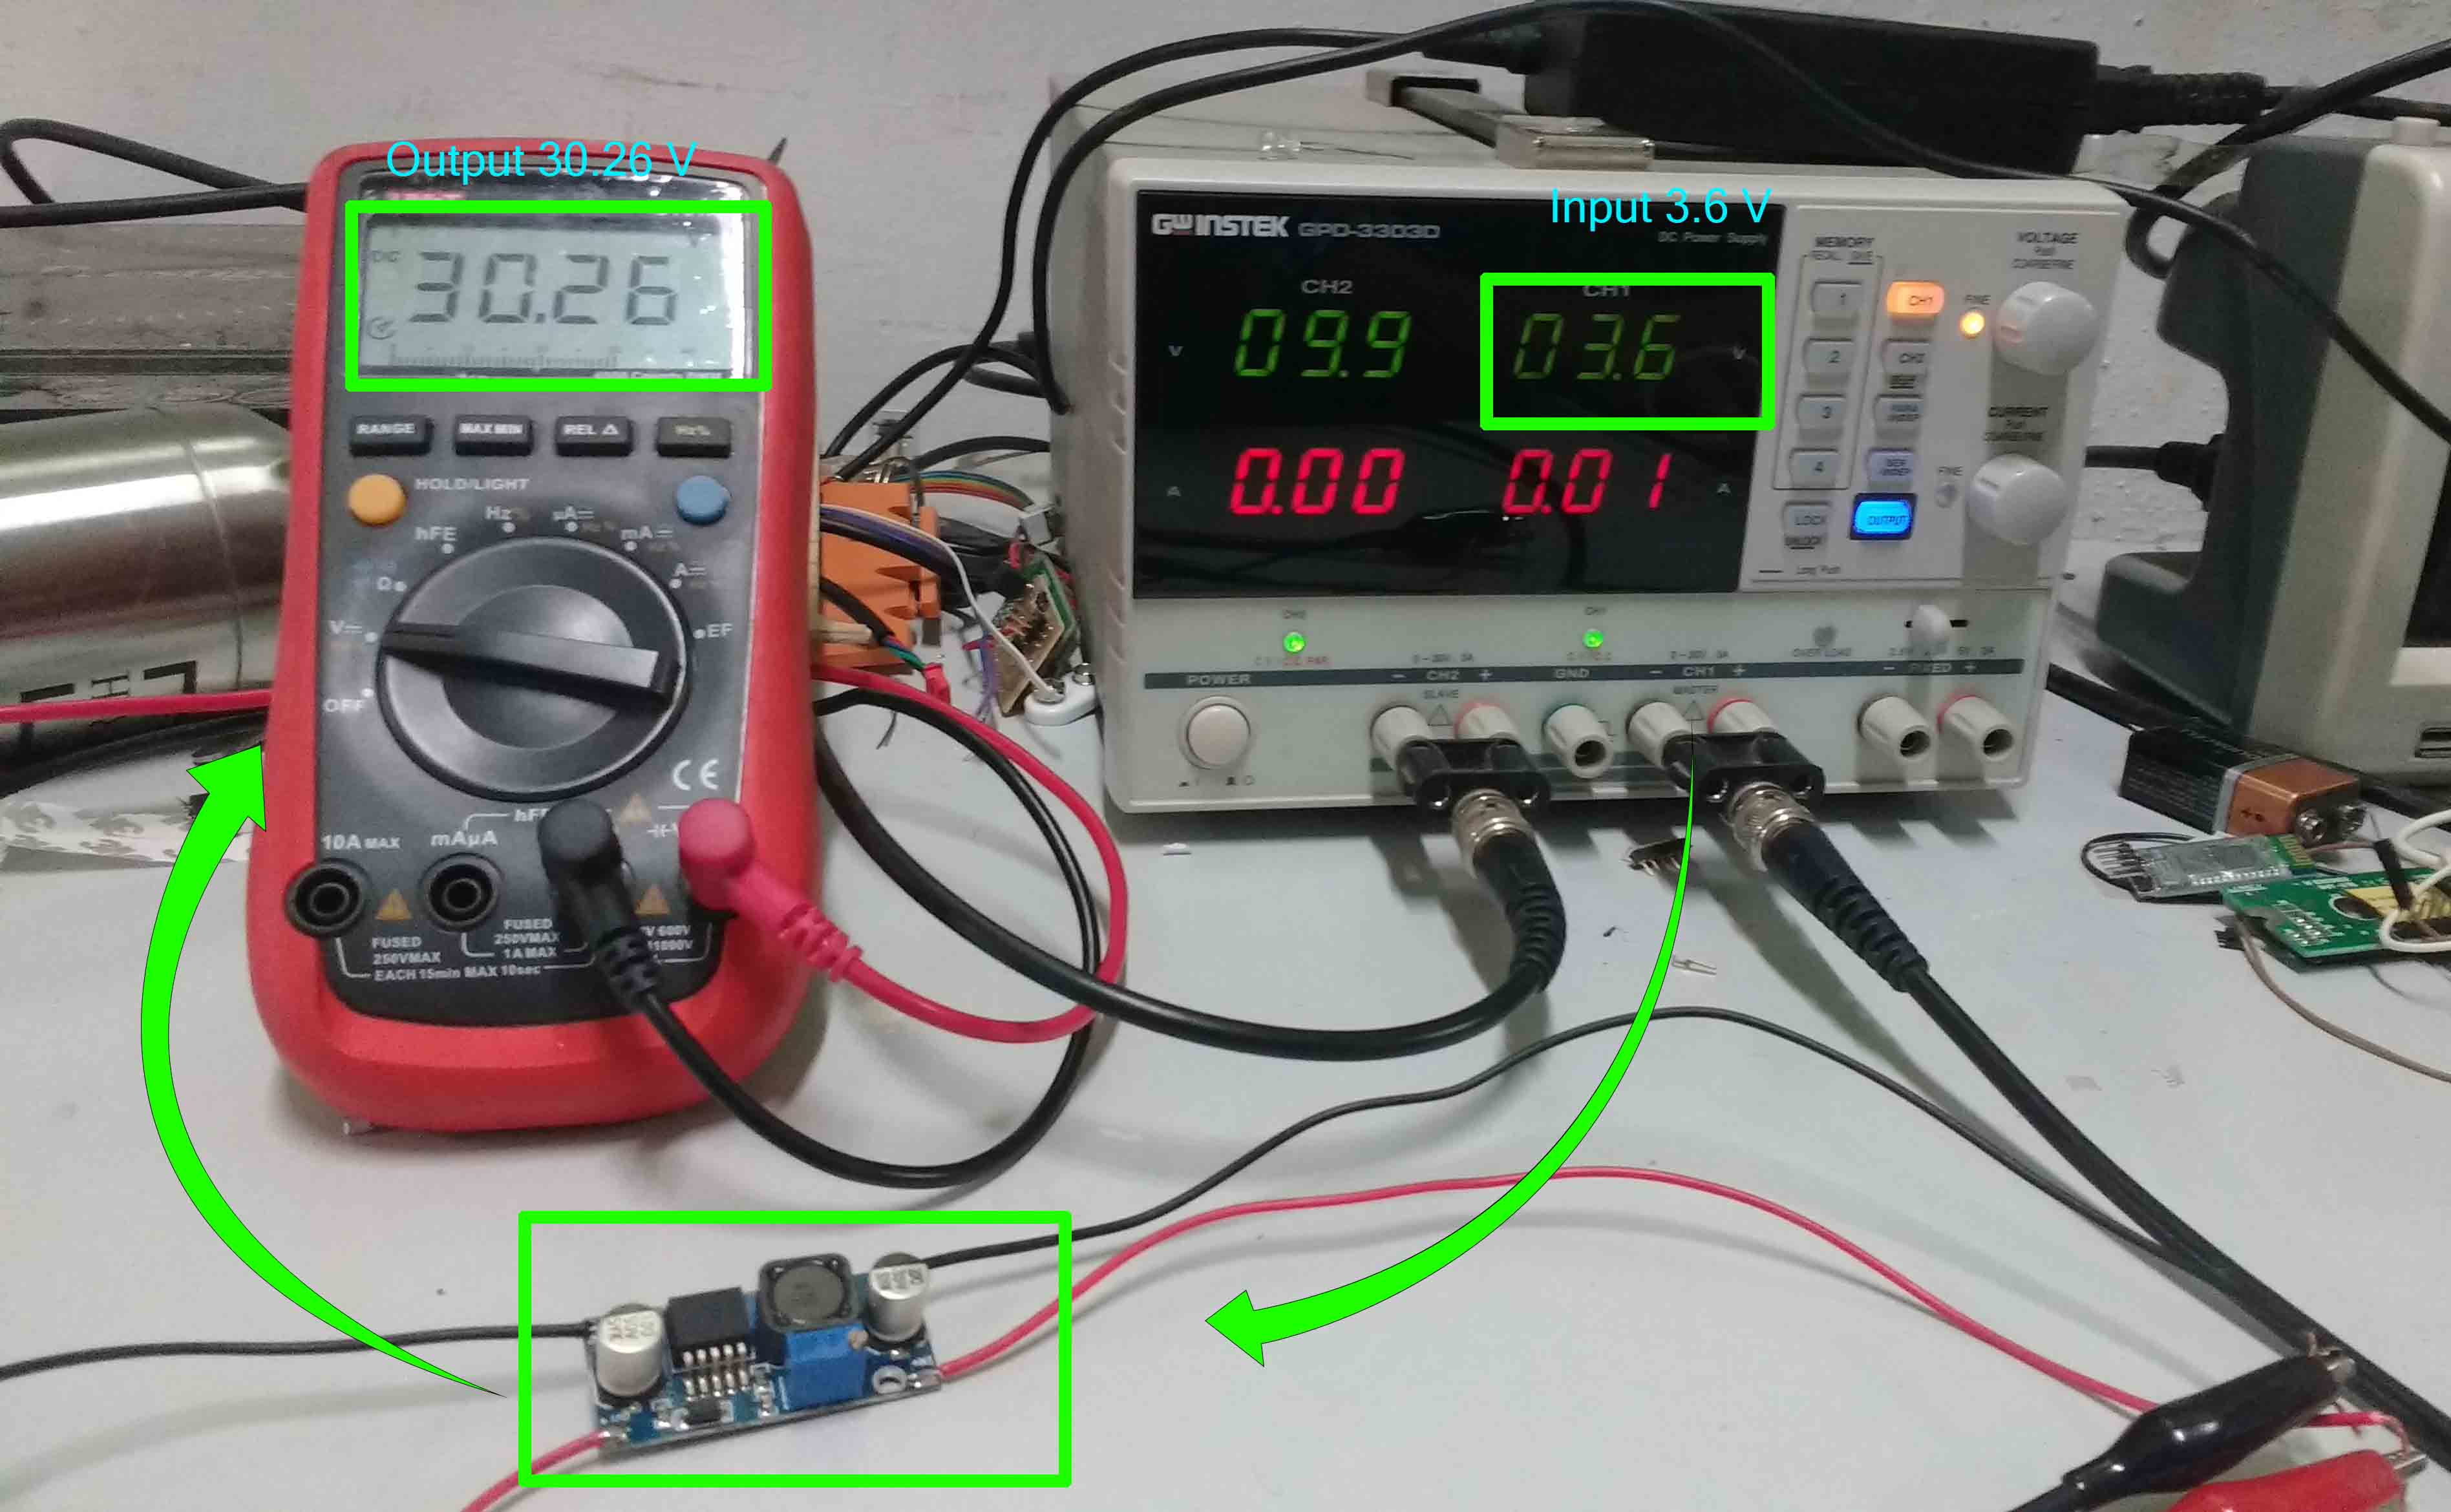 Project Testing Electrical Installation Part One Youtube This Video Simply Explains The Working Of A Boost Converter When I Applied 36v To Input Could Able Get Maximum Readable Value